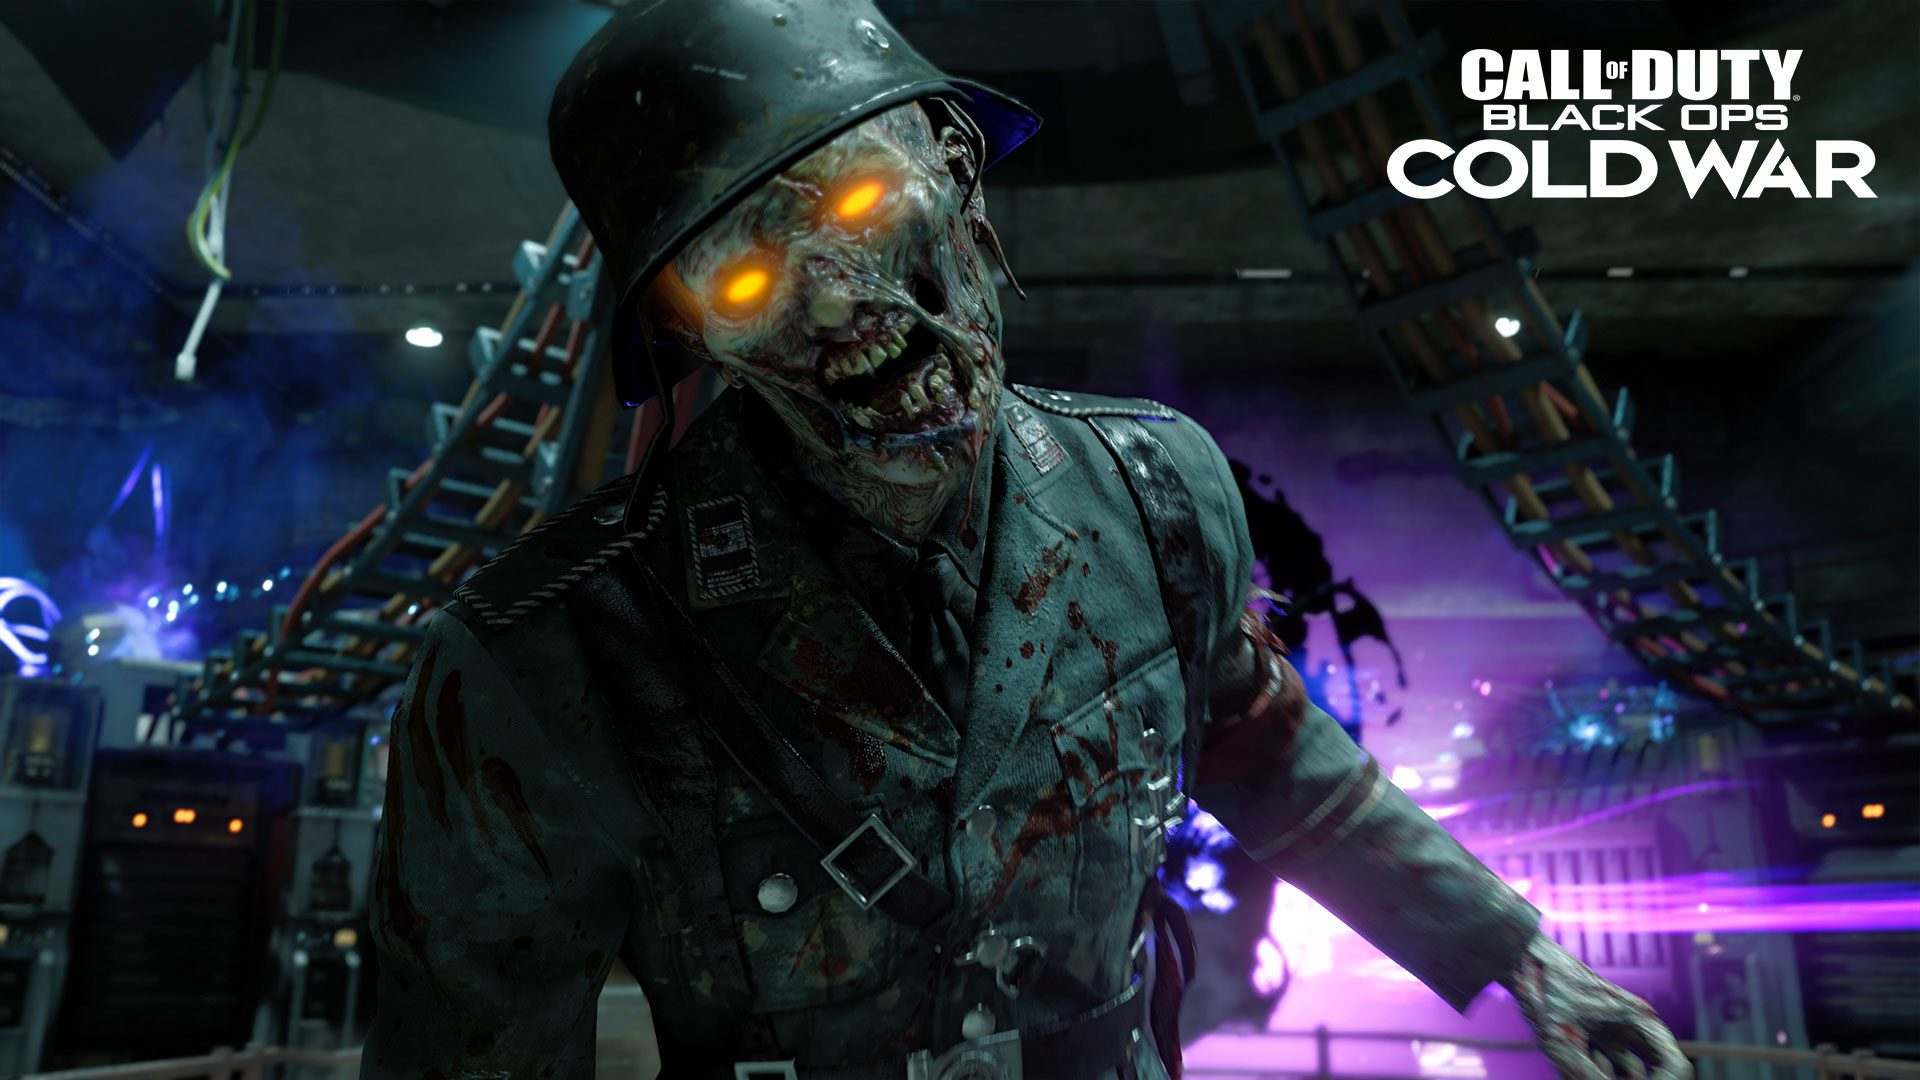 A Two-Player Co-Op Zombie Mode Comes To Call of Duty: Black Ops Cold War